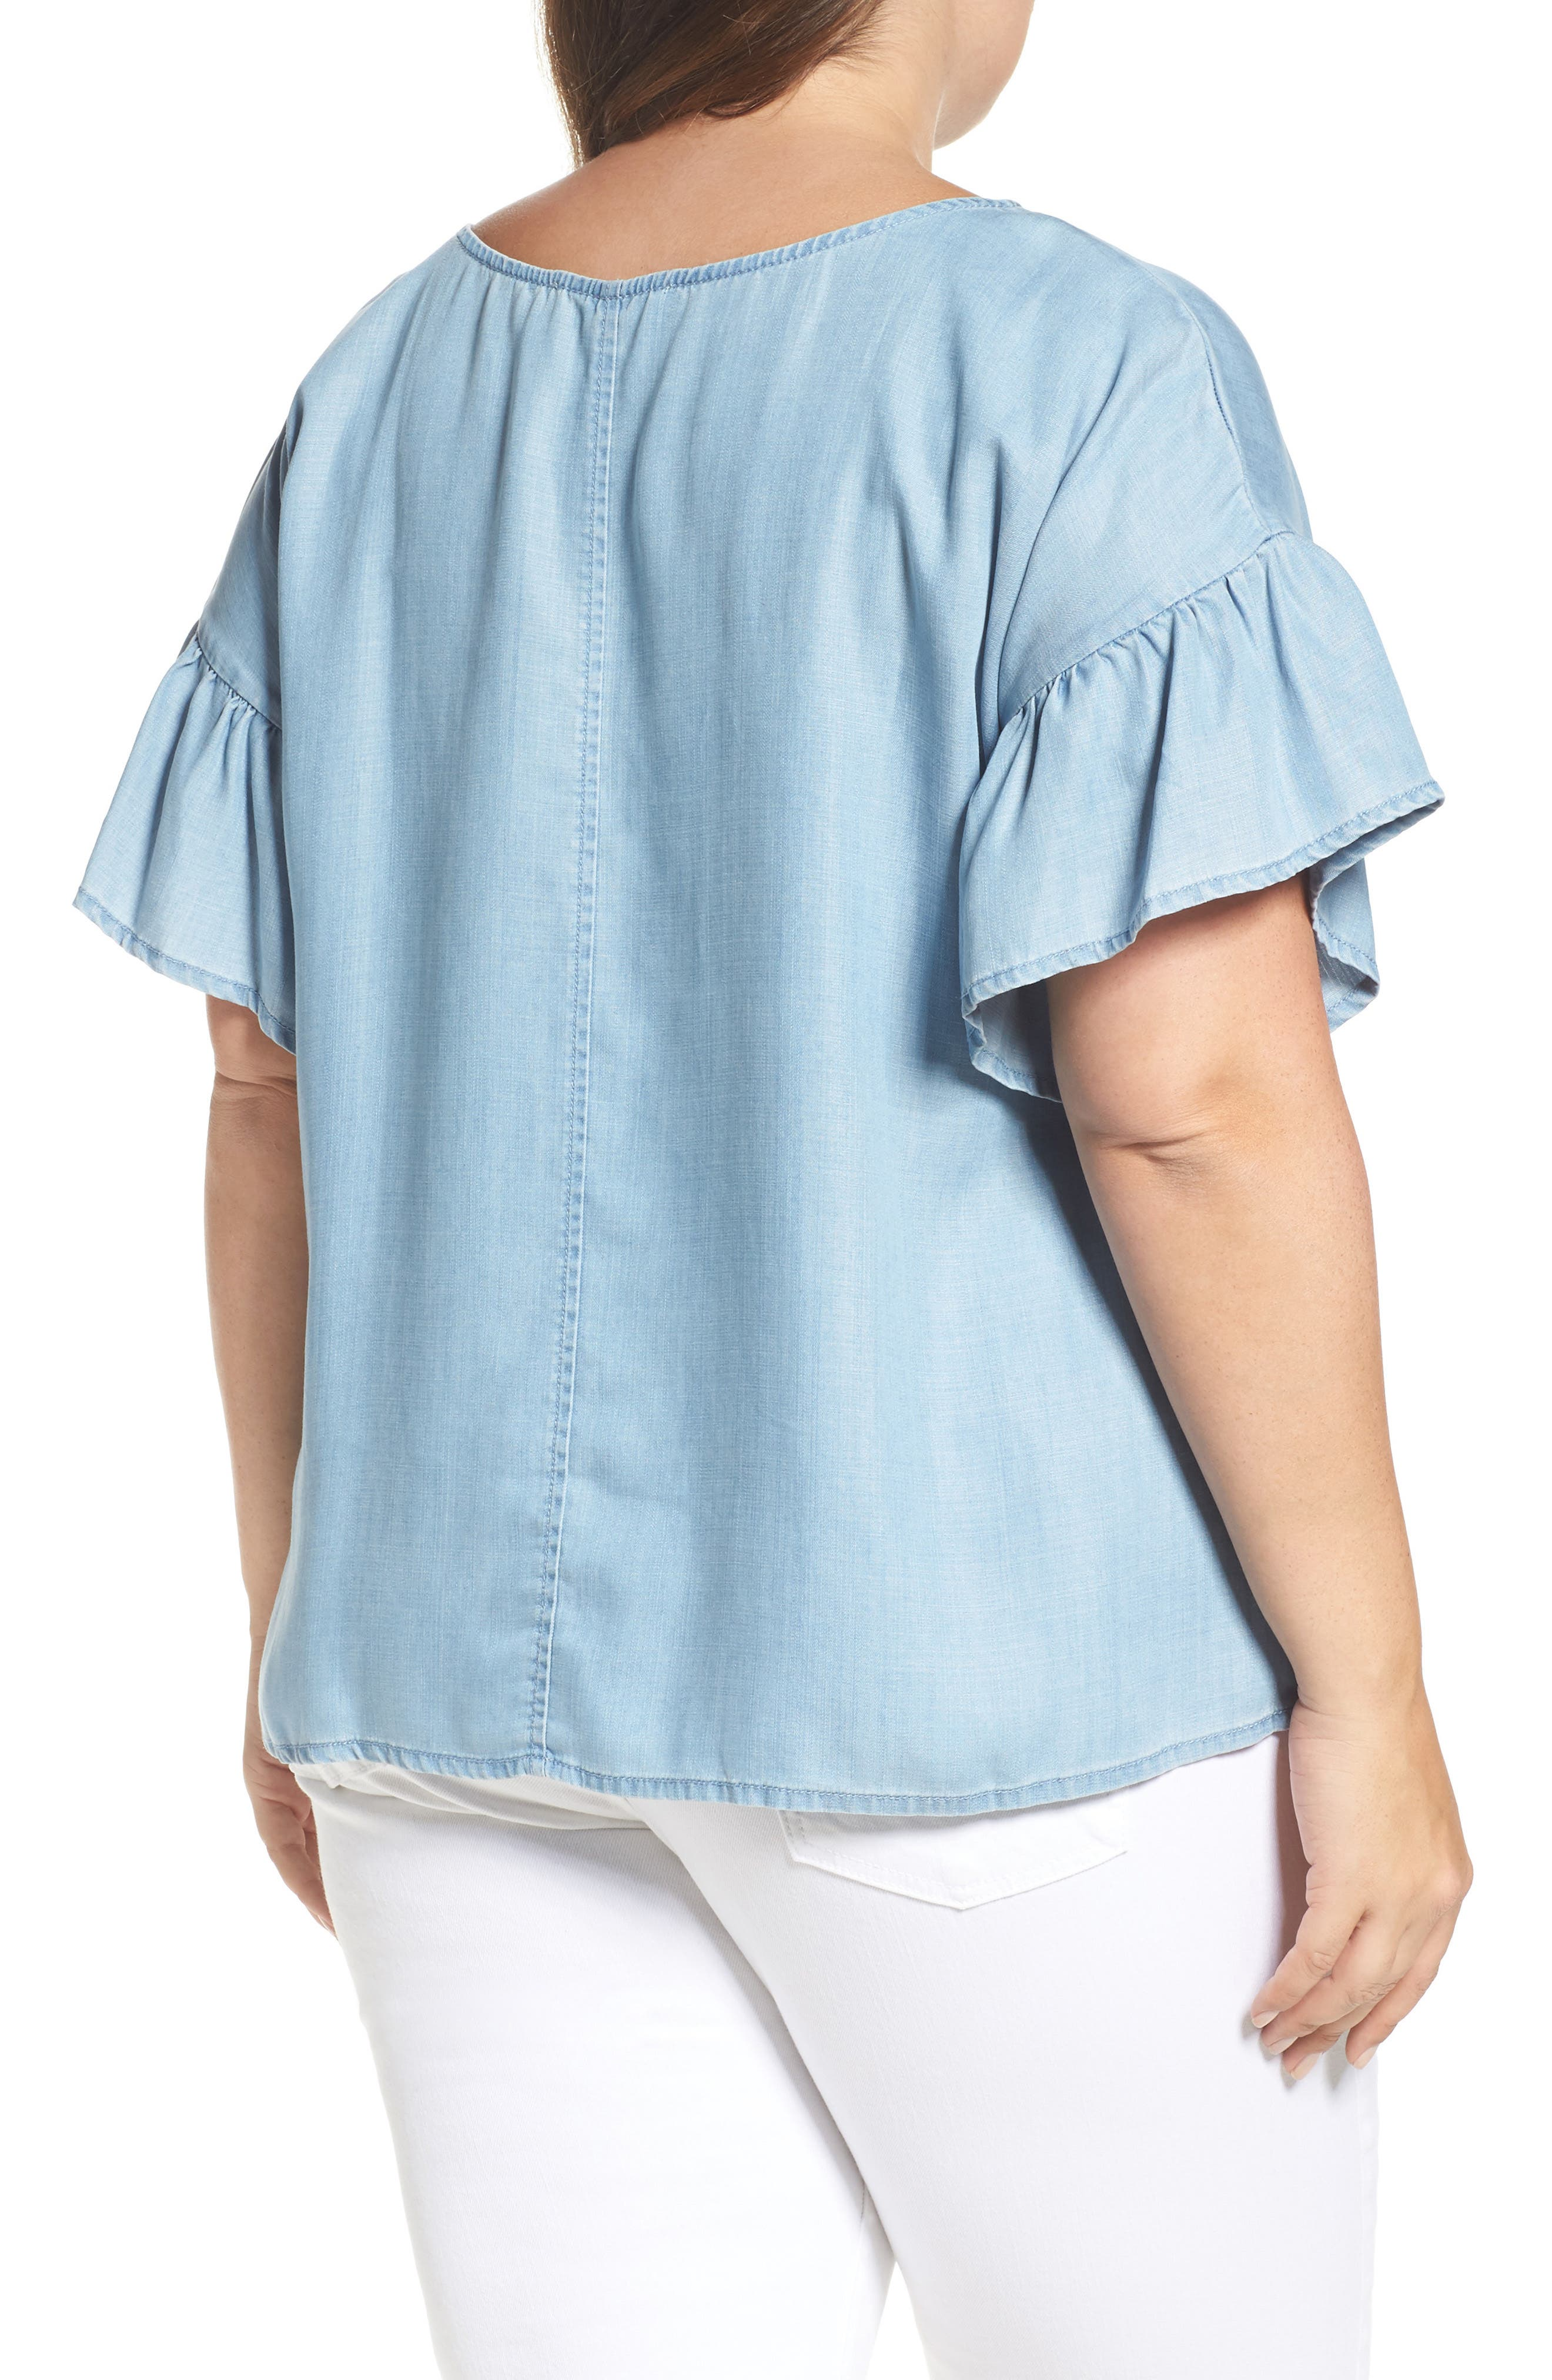 Ruffle Sleeve Chambray Top,                             Alternate thumbnail 2, color,                             401